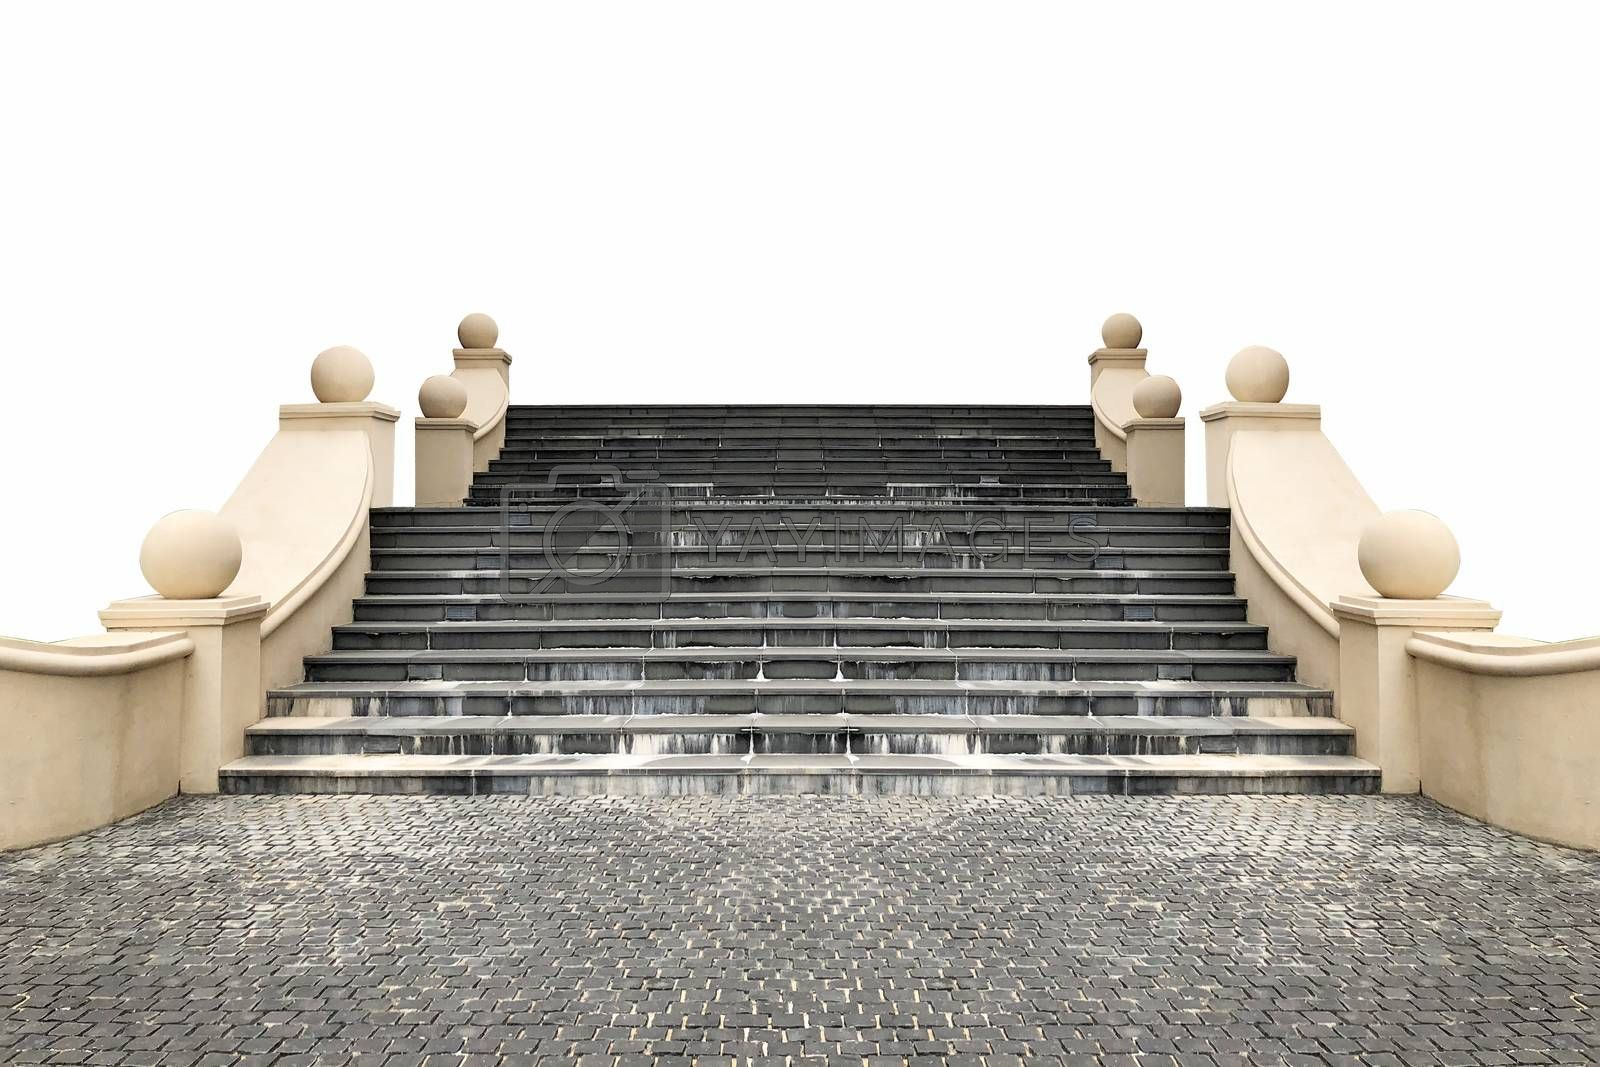 Stairs Roman style on white background